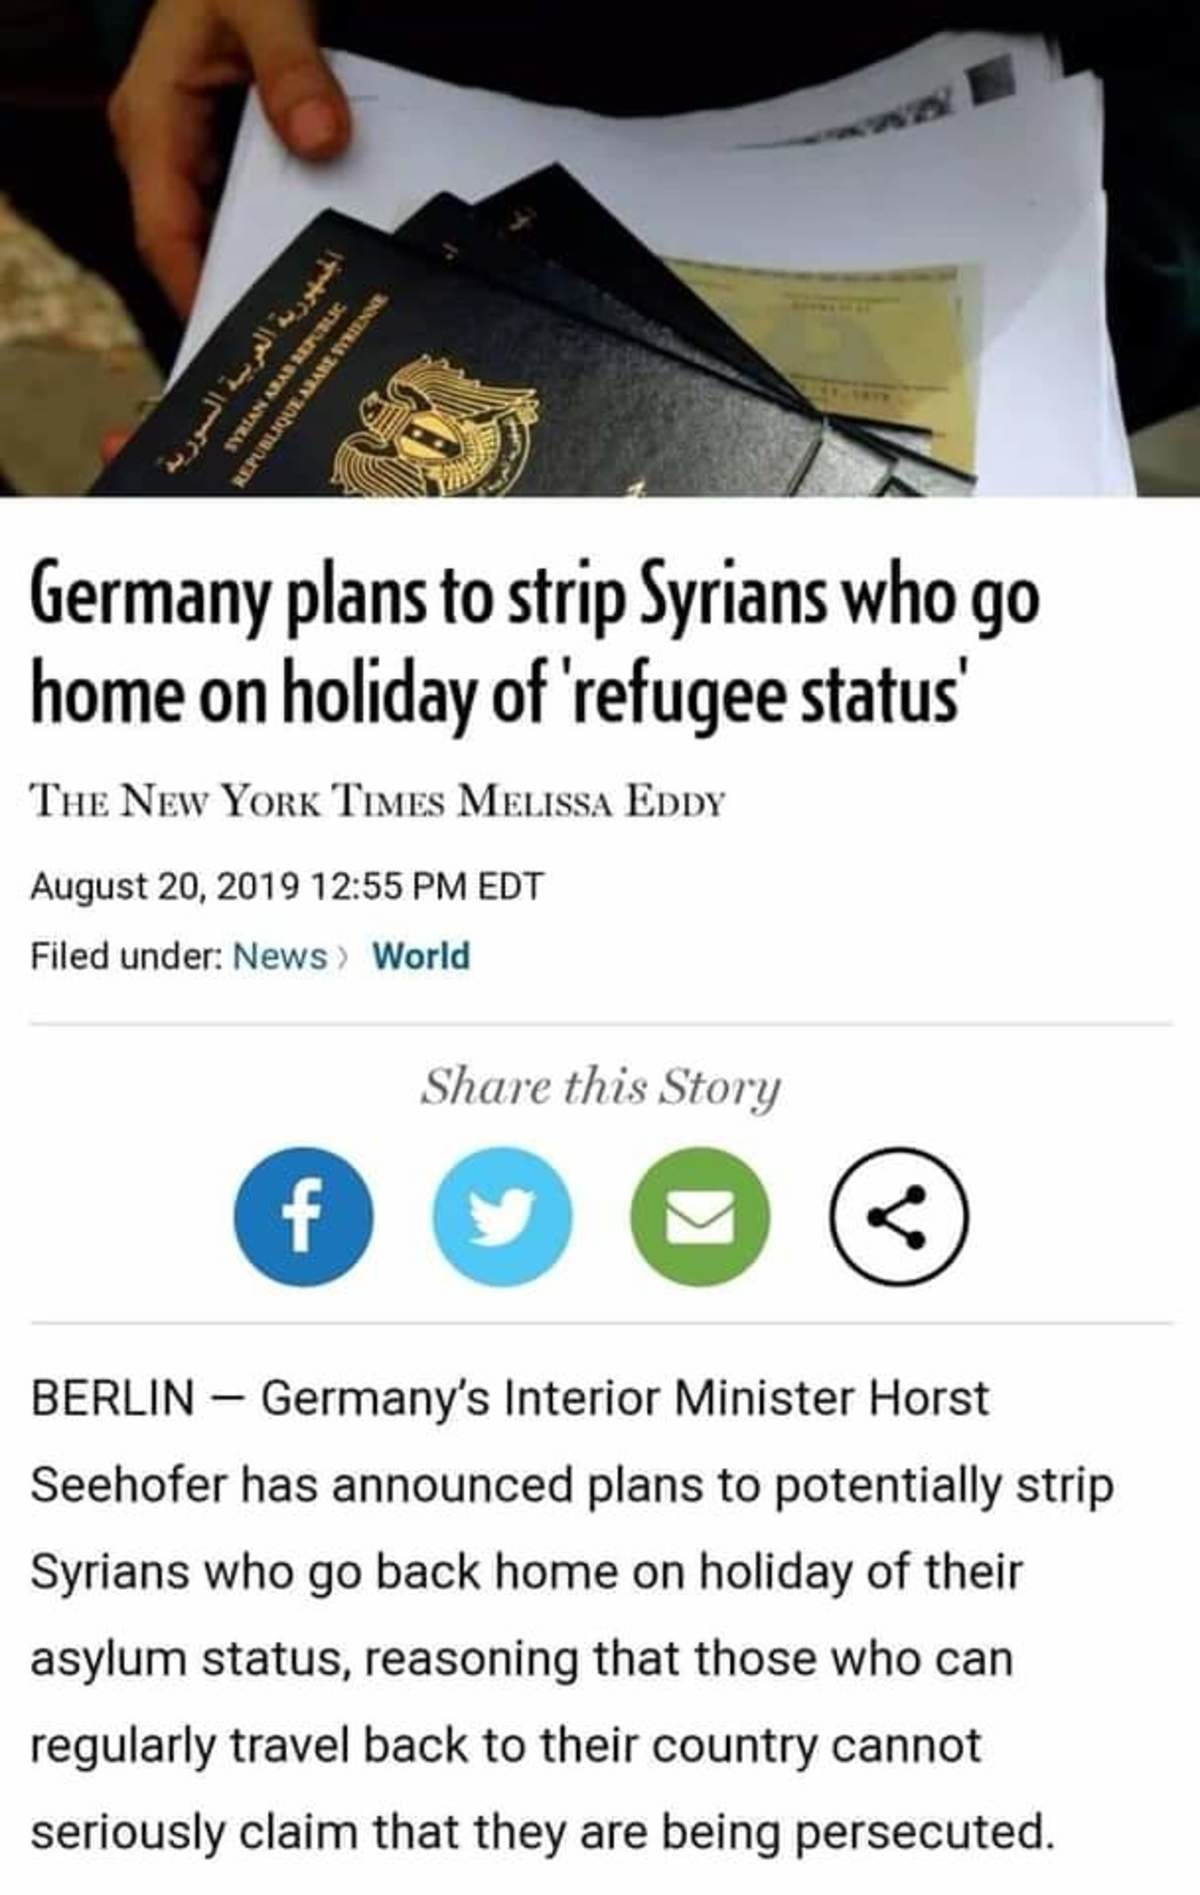 slow clap. This should be obvious.. It's almost as if none of them deserve refugee status